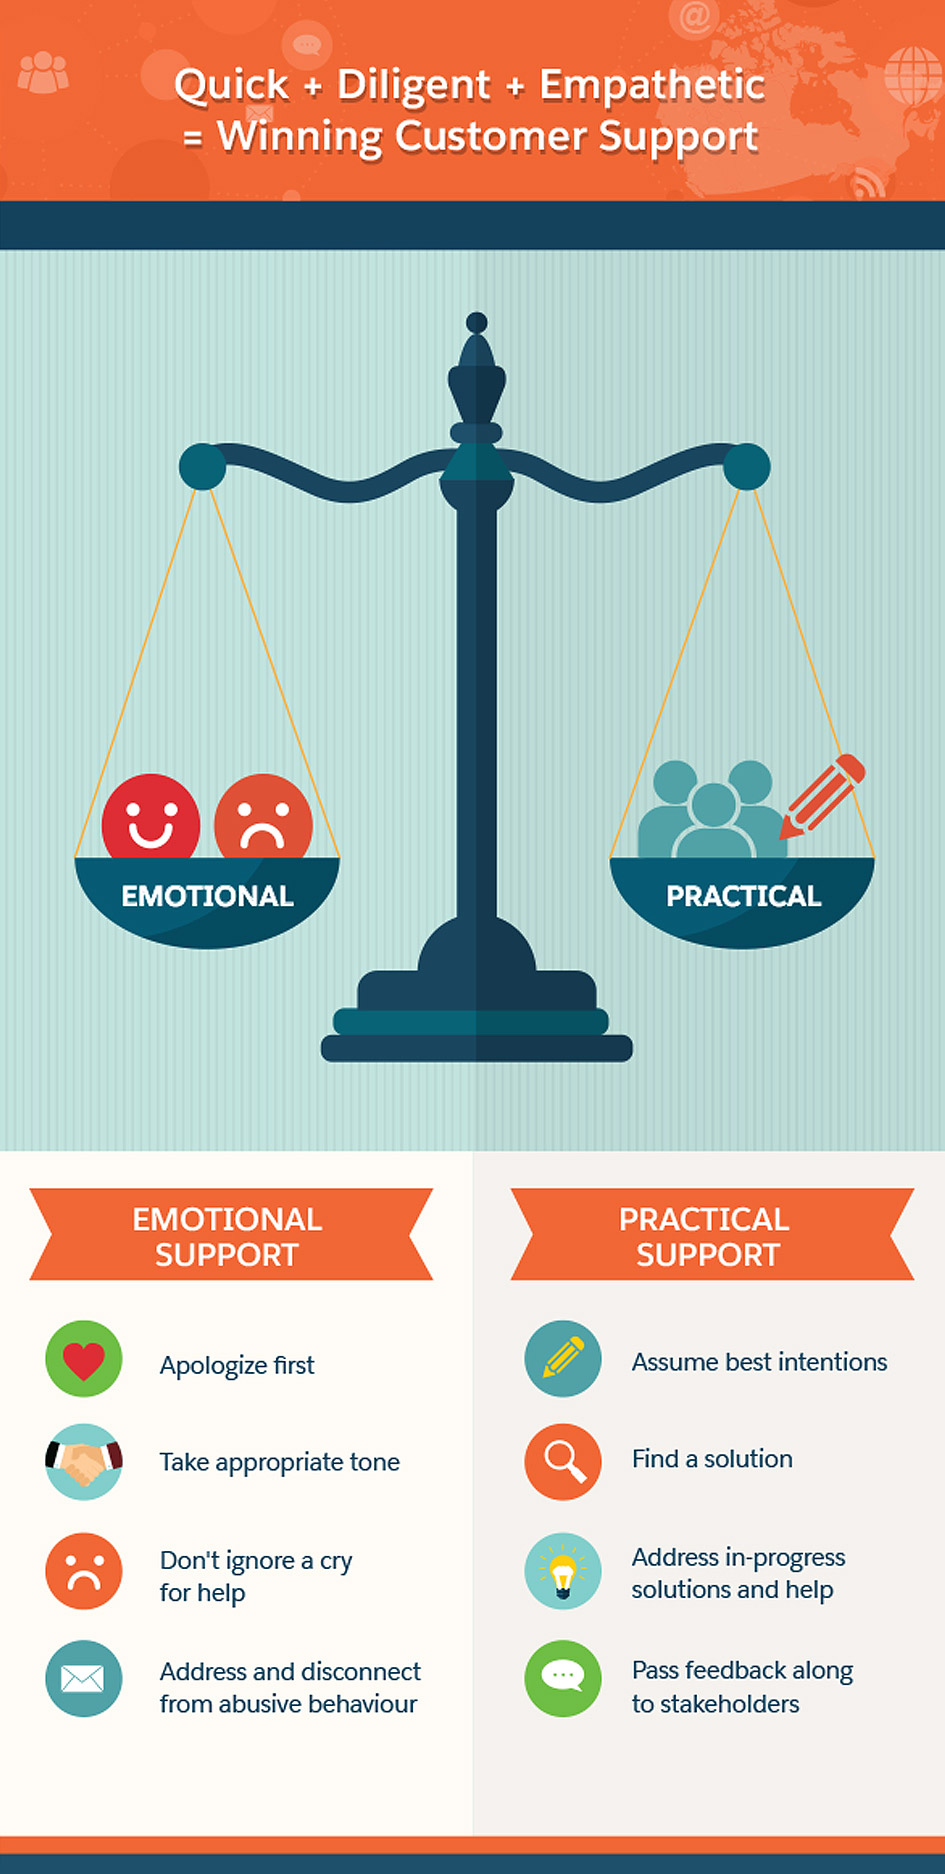 face-customer-service-infographic-3